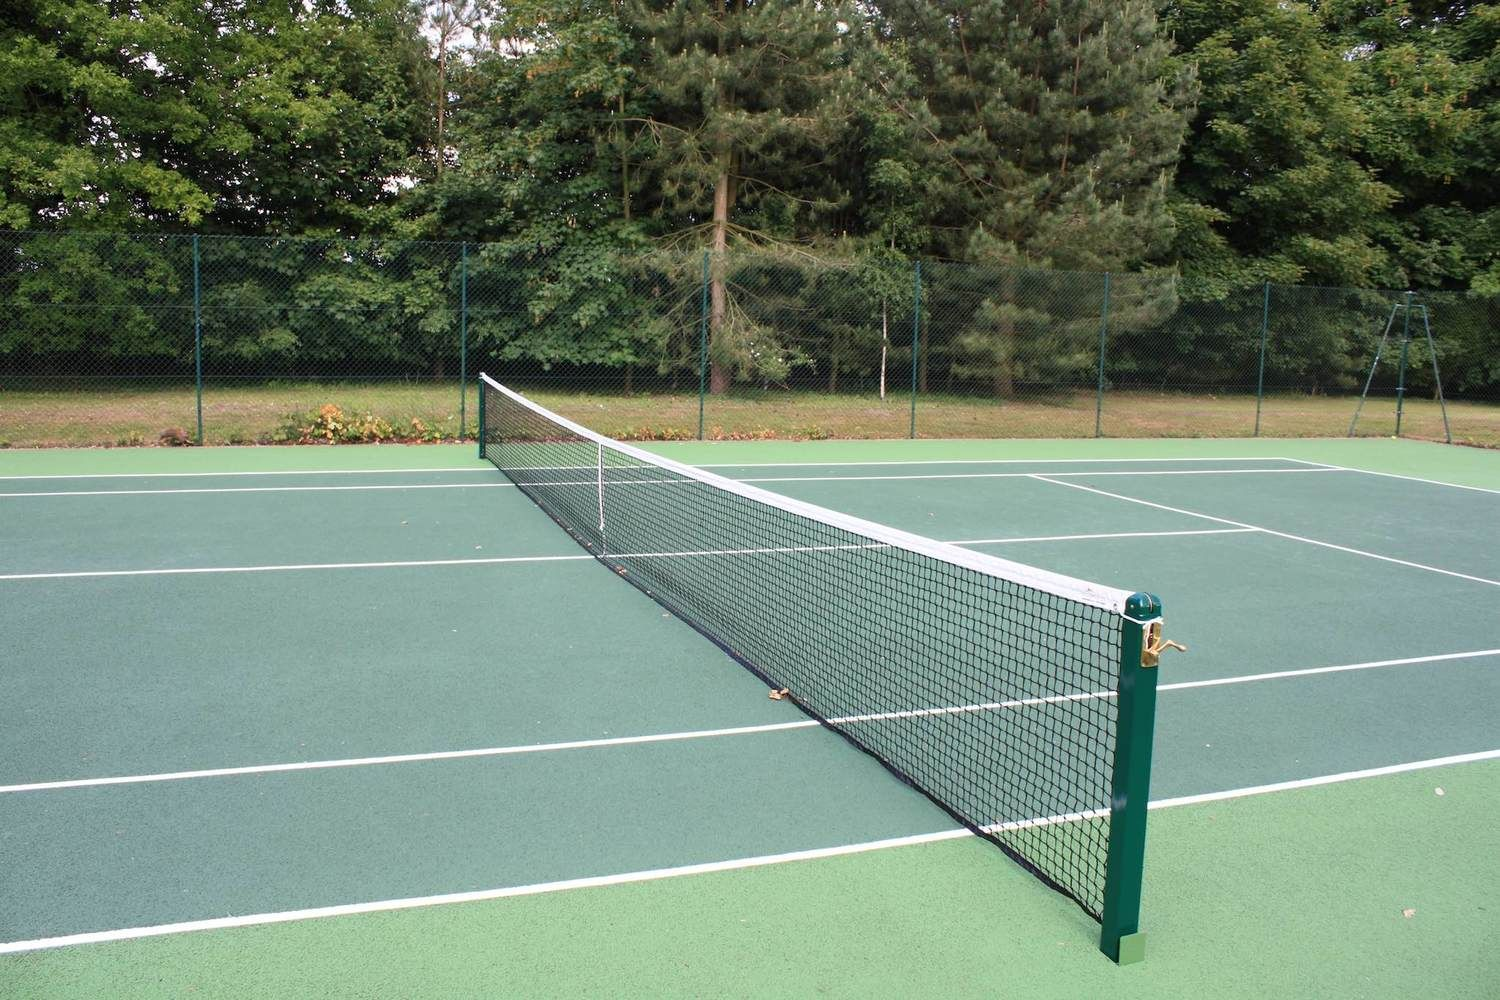 Serve an ace on the all-weather tennis court